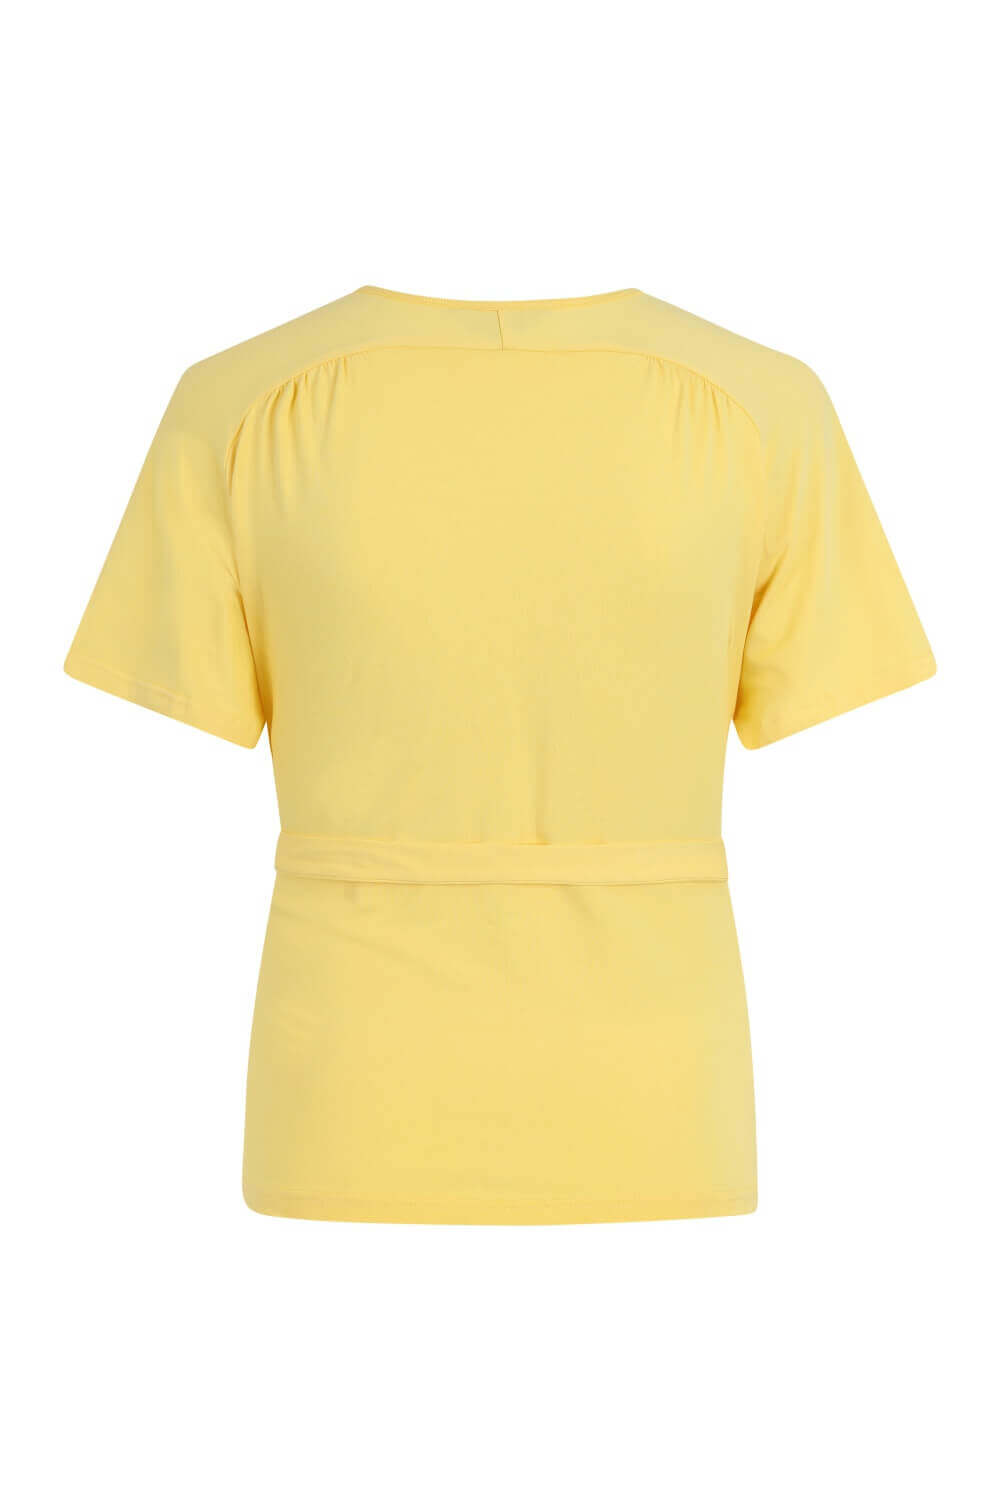 Banned Retro Lemon 30s Fancy Raglan Top